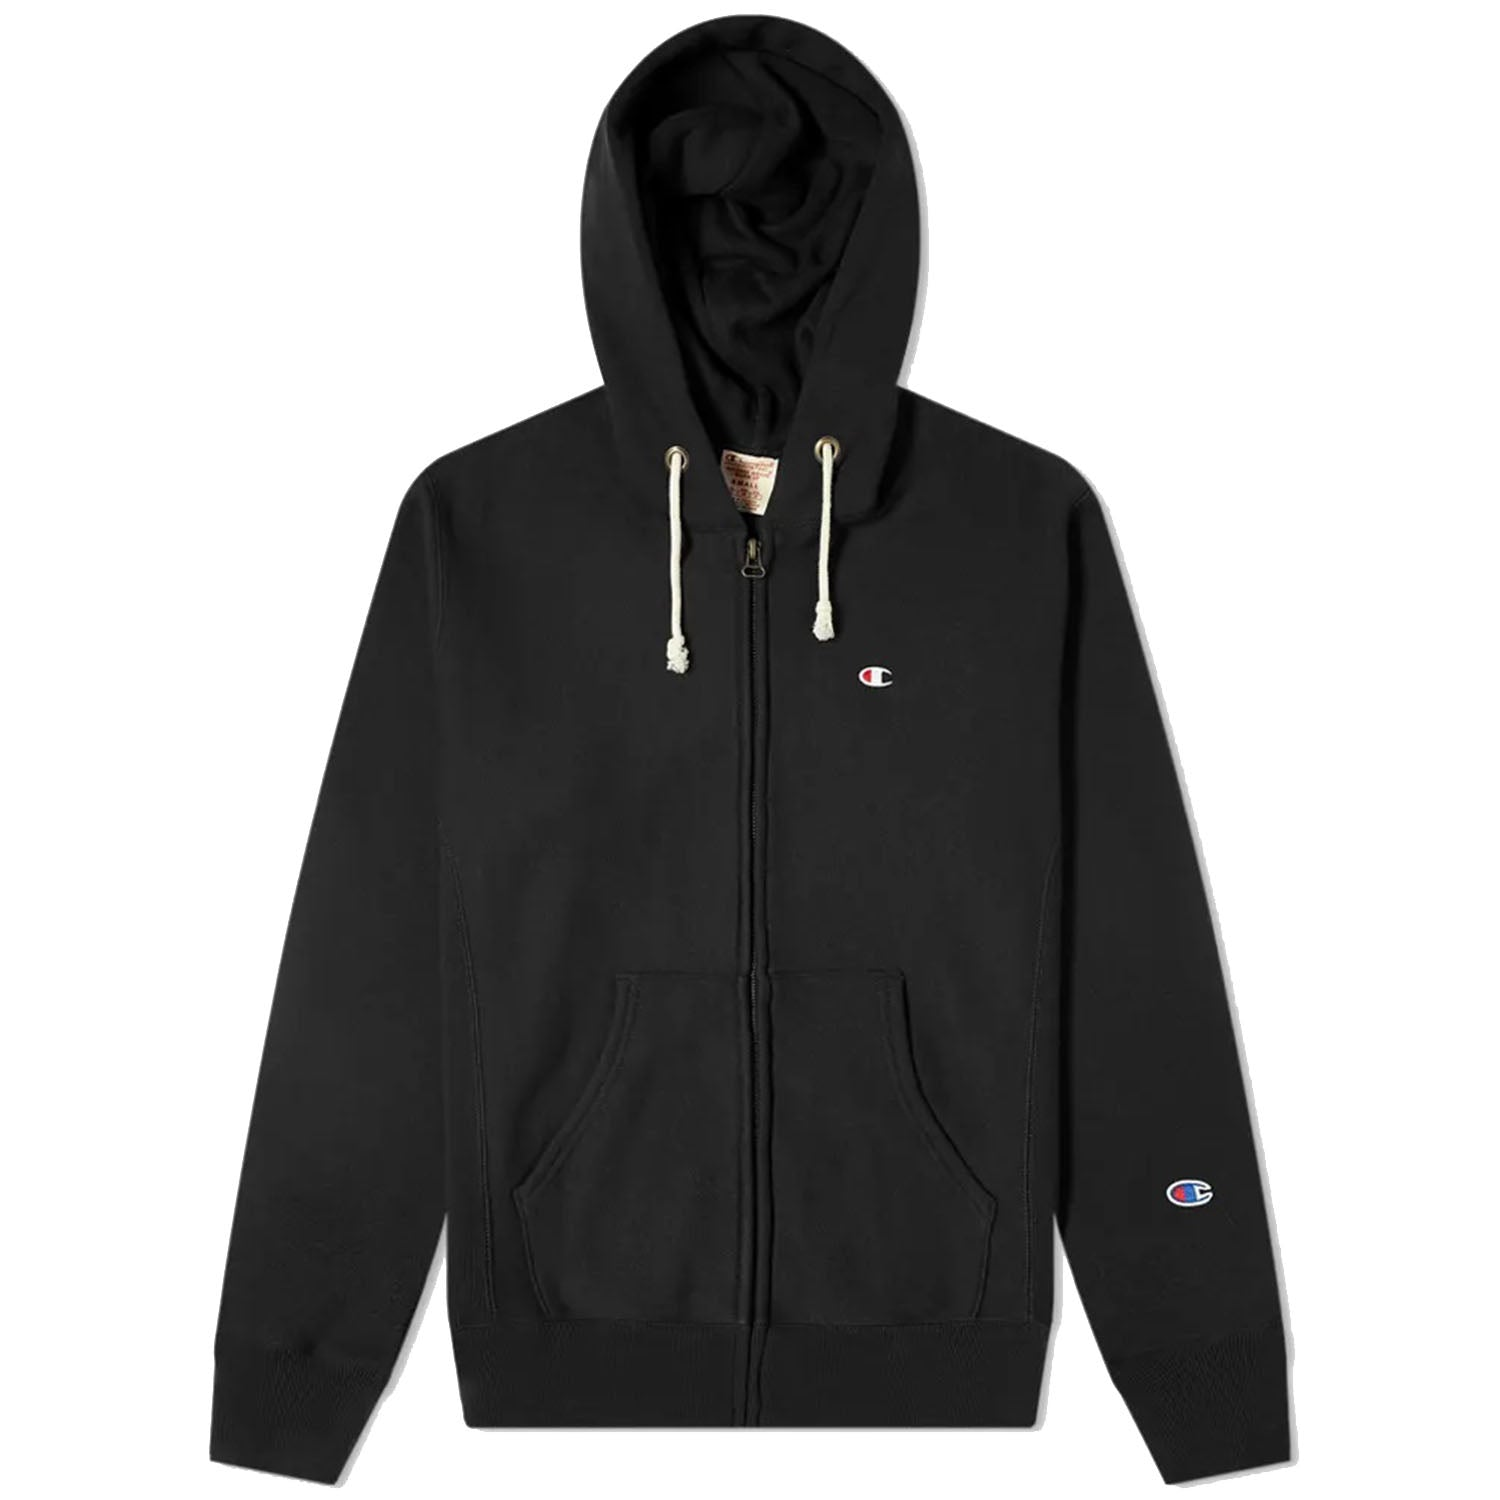 Champion Zip Up Black Hoodie